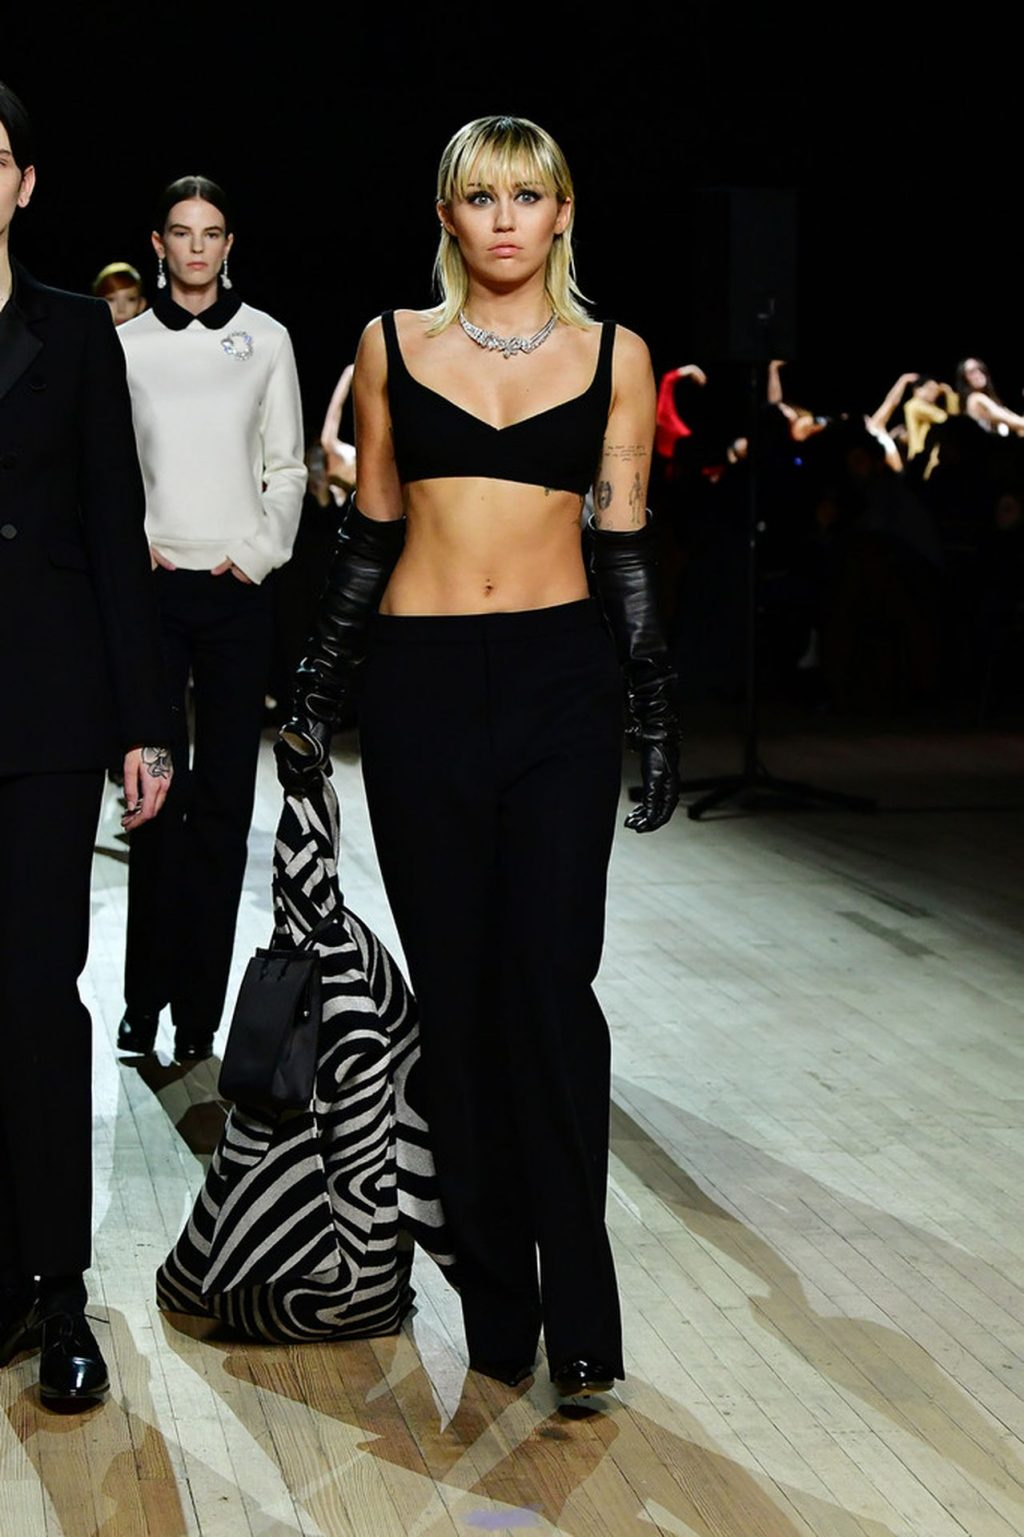 Miley Cyrus Sexy The Fappening Blog 3 4 1024x1537 - Miley Cyrus Walks the Runway at the Marc Jacobs Show (22 Photos + GIF & Video)